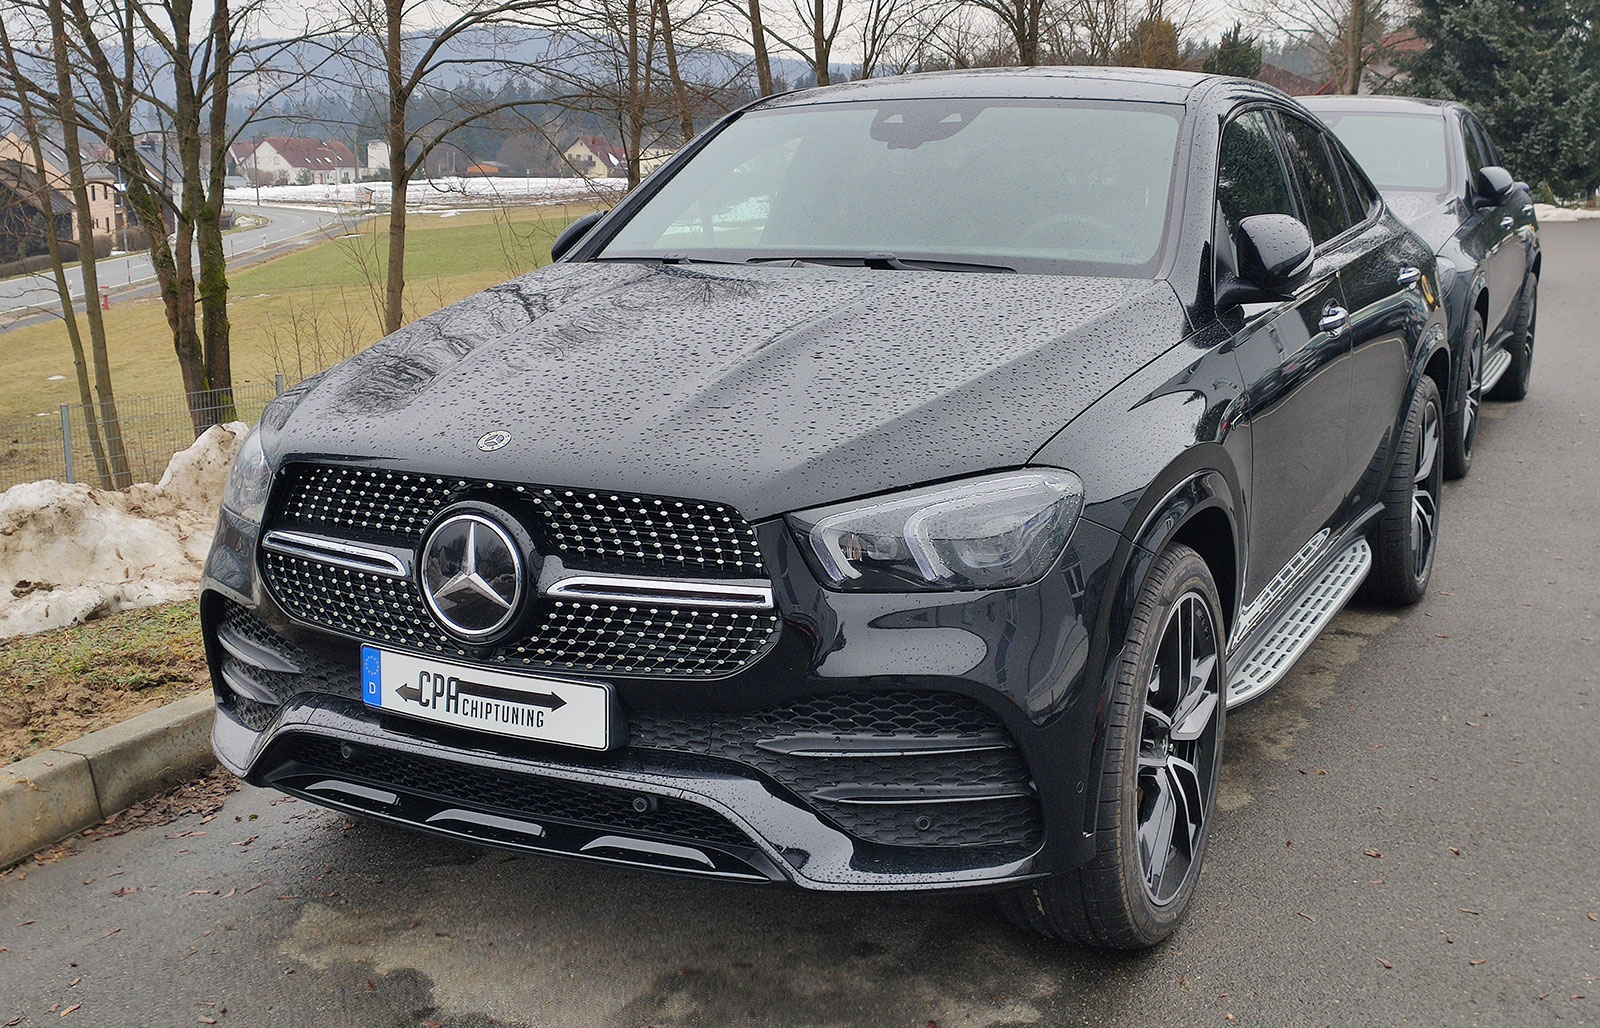 The new Mercedes GLE 350 de being tested at CPA